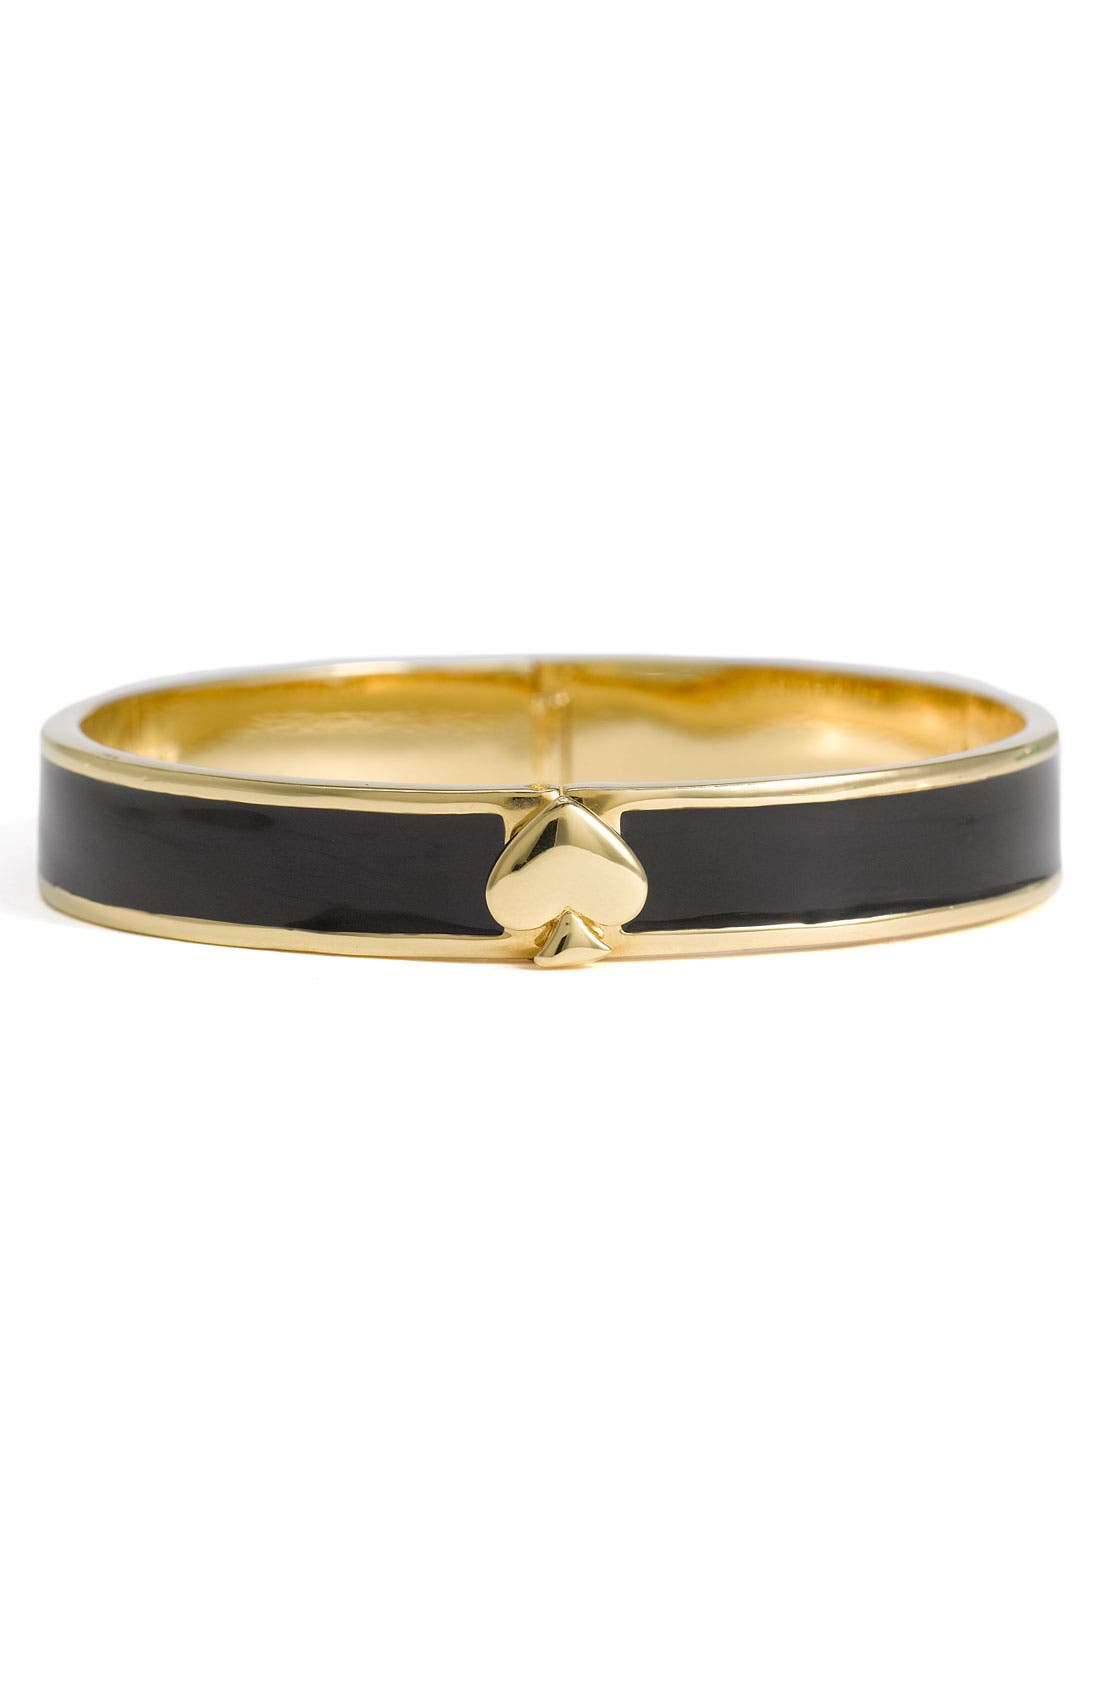 Alternate Image 1 Selected - kate spade new york 'spade' hinged bangle